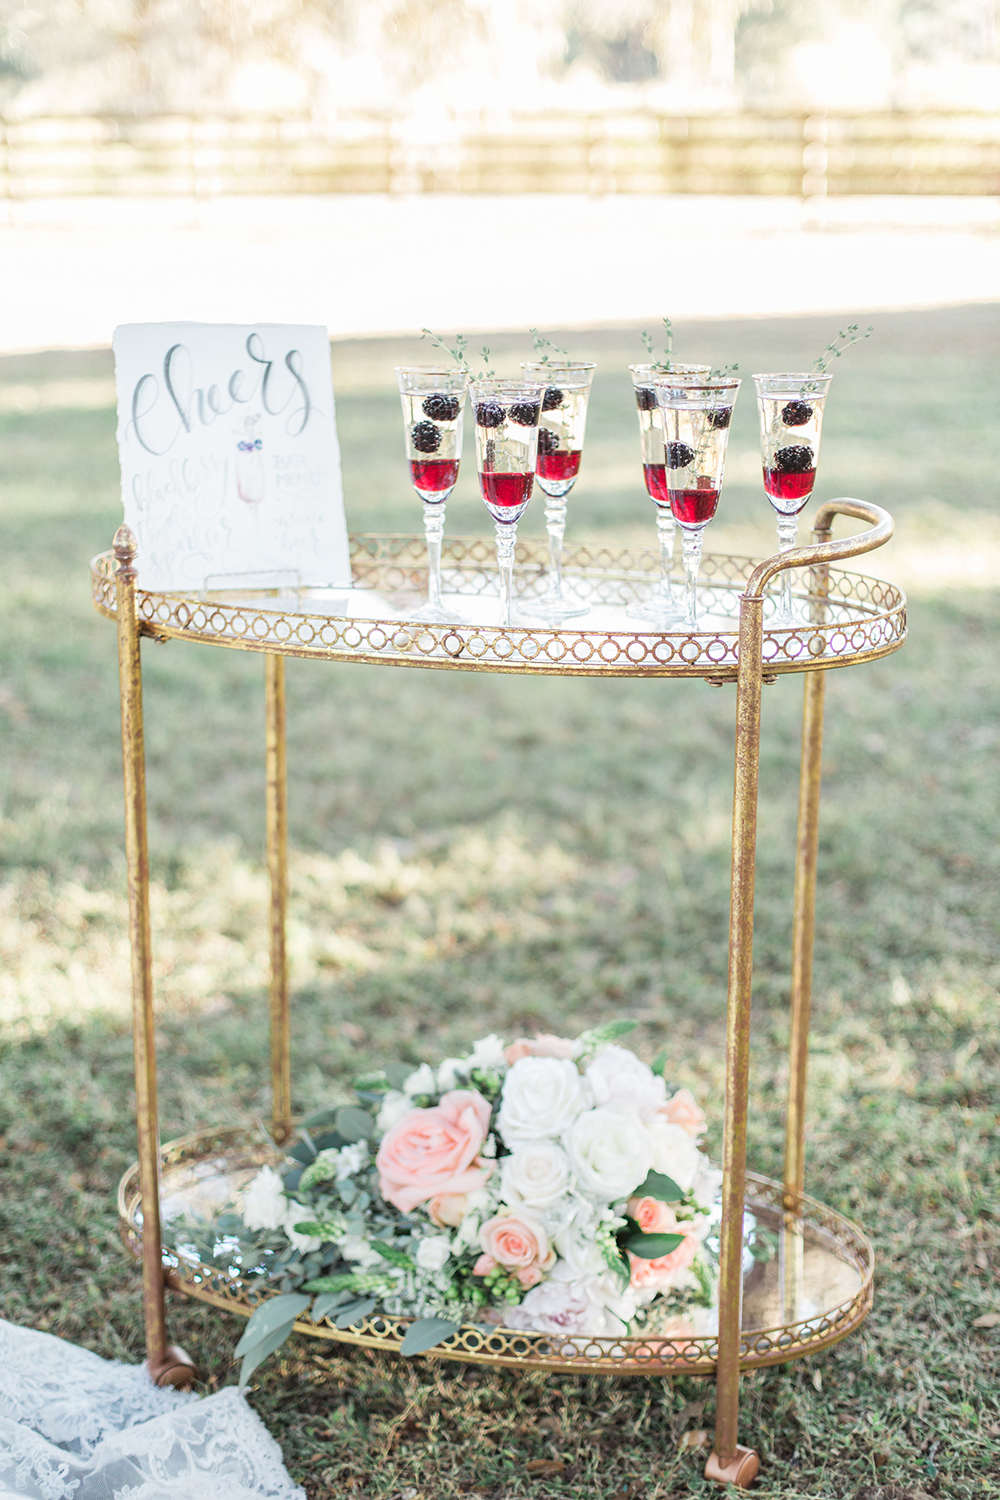 wedding drinks - photo by Landon Hendrick Photography http://ruffledblog.com/southern-garden-chic-wedding-inspiration